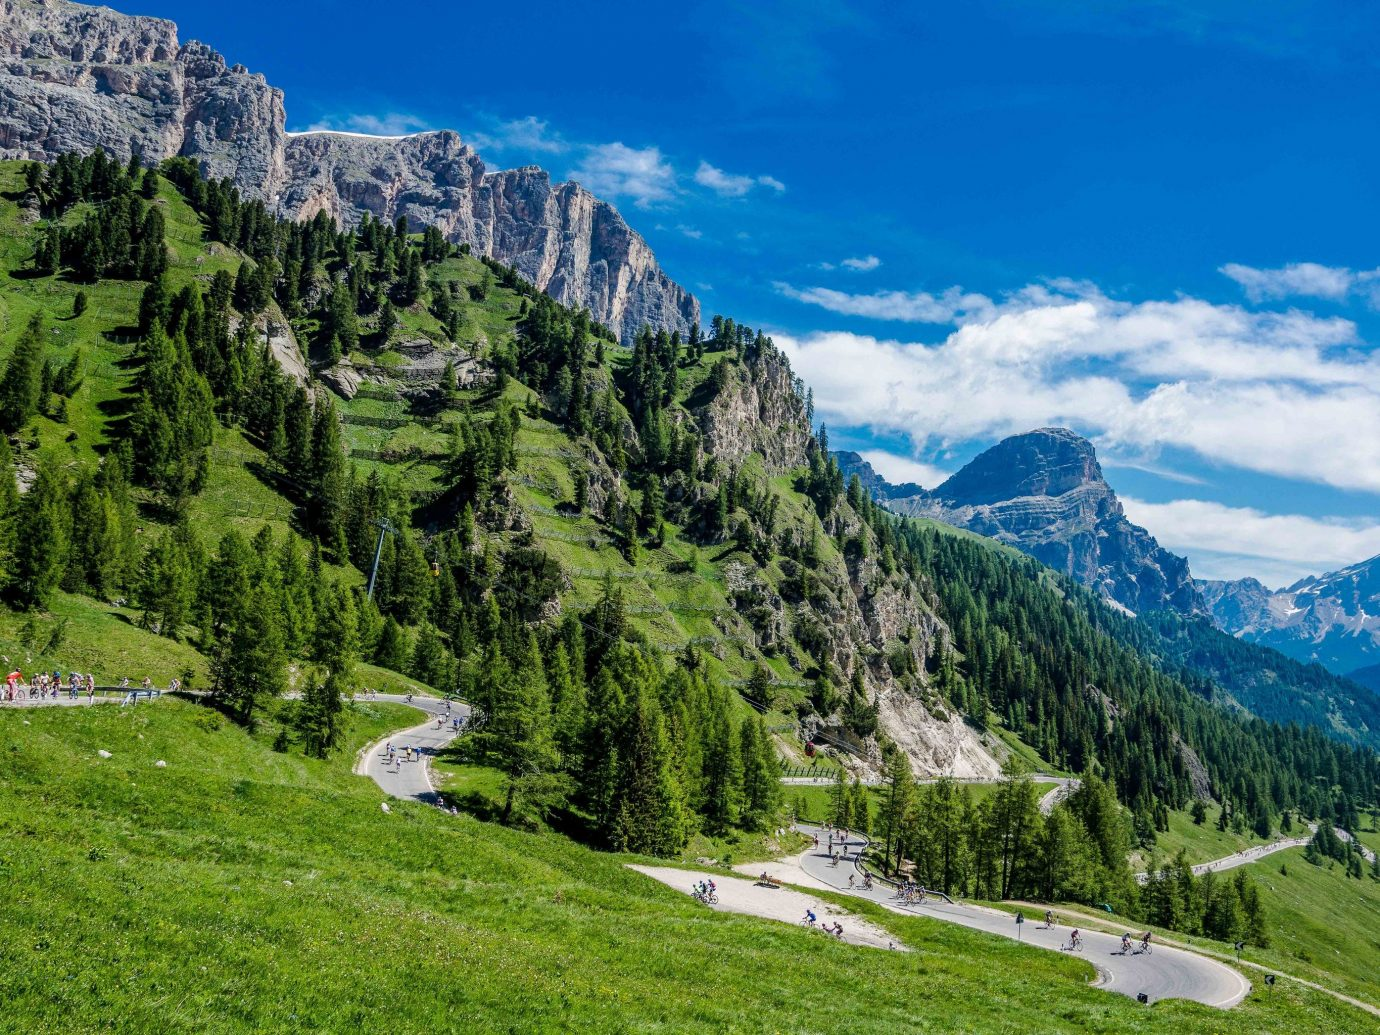 Bike Dolomites Trip Ideas mountain outdoor grass Nature mountainous landforms mountain range geographical feature valley landform wilderness alps canyon mountain pass ridge meadow landscape hillside plateau walking Adventure hill park hiking lush grassy highland